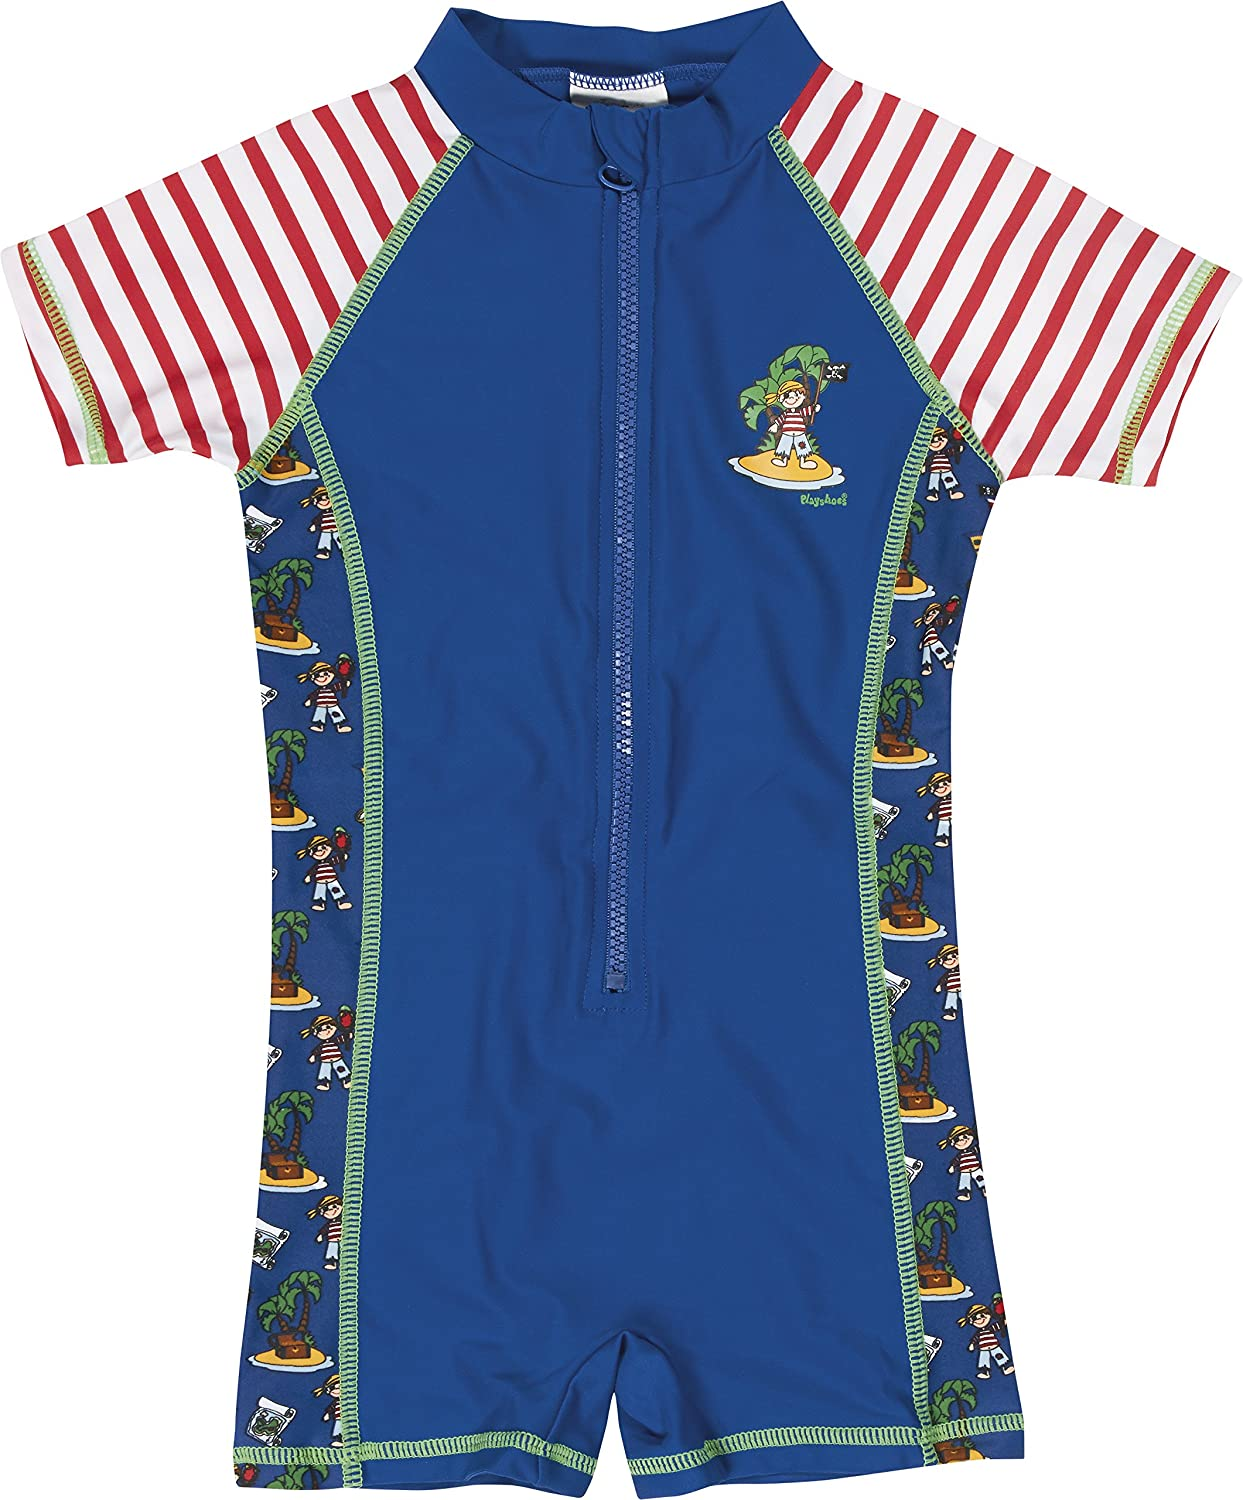 Playshoes Boys UV Sun Protection All-in-One Swimsuit Pirate Island Swim Shorts